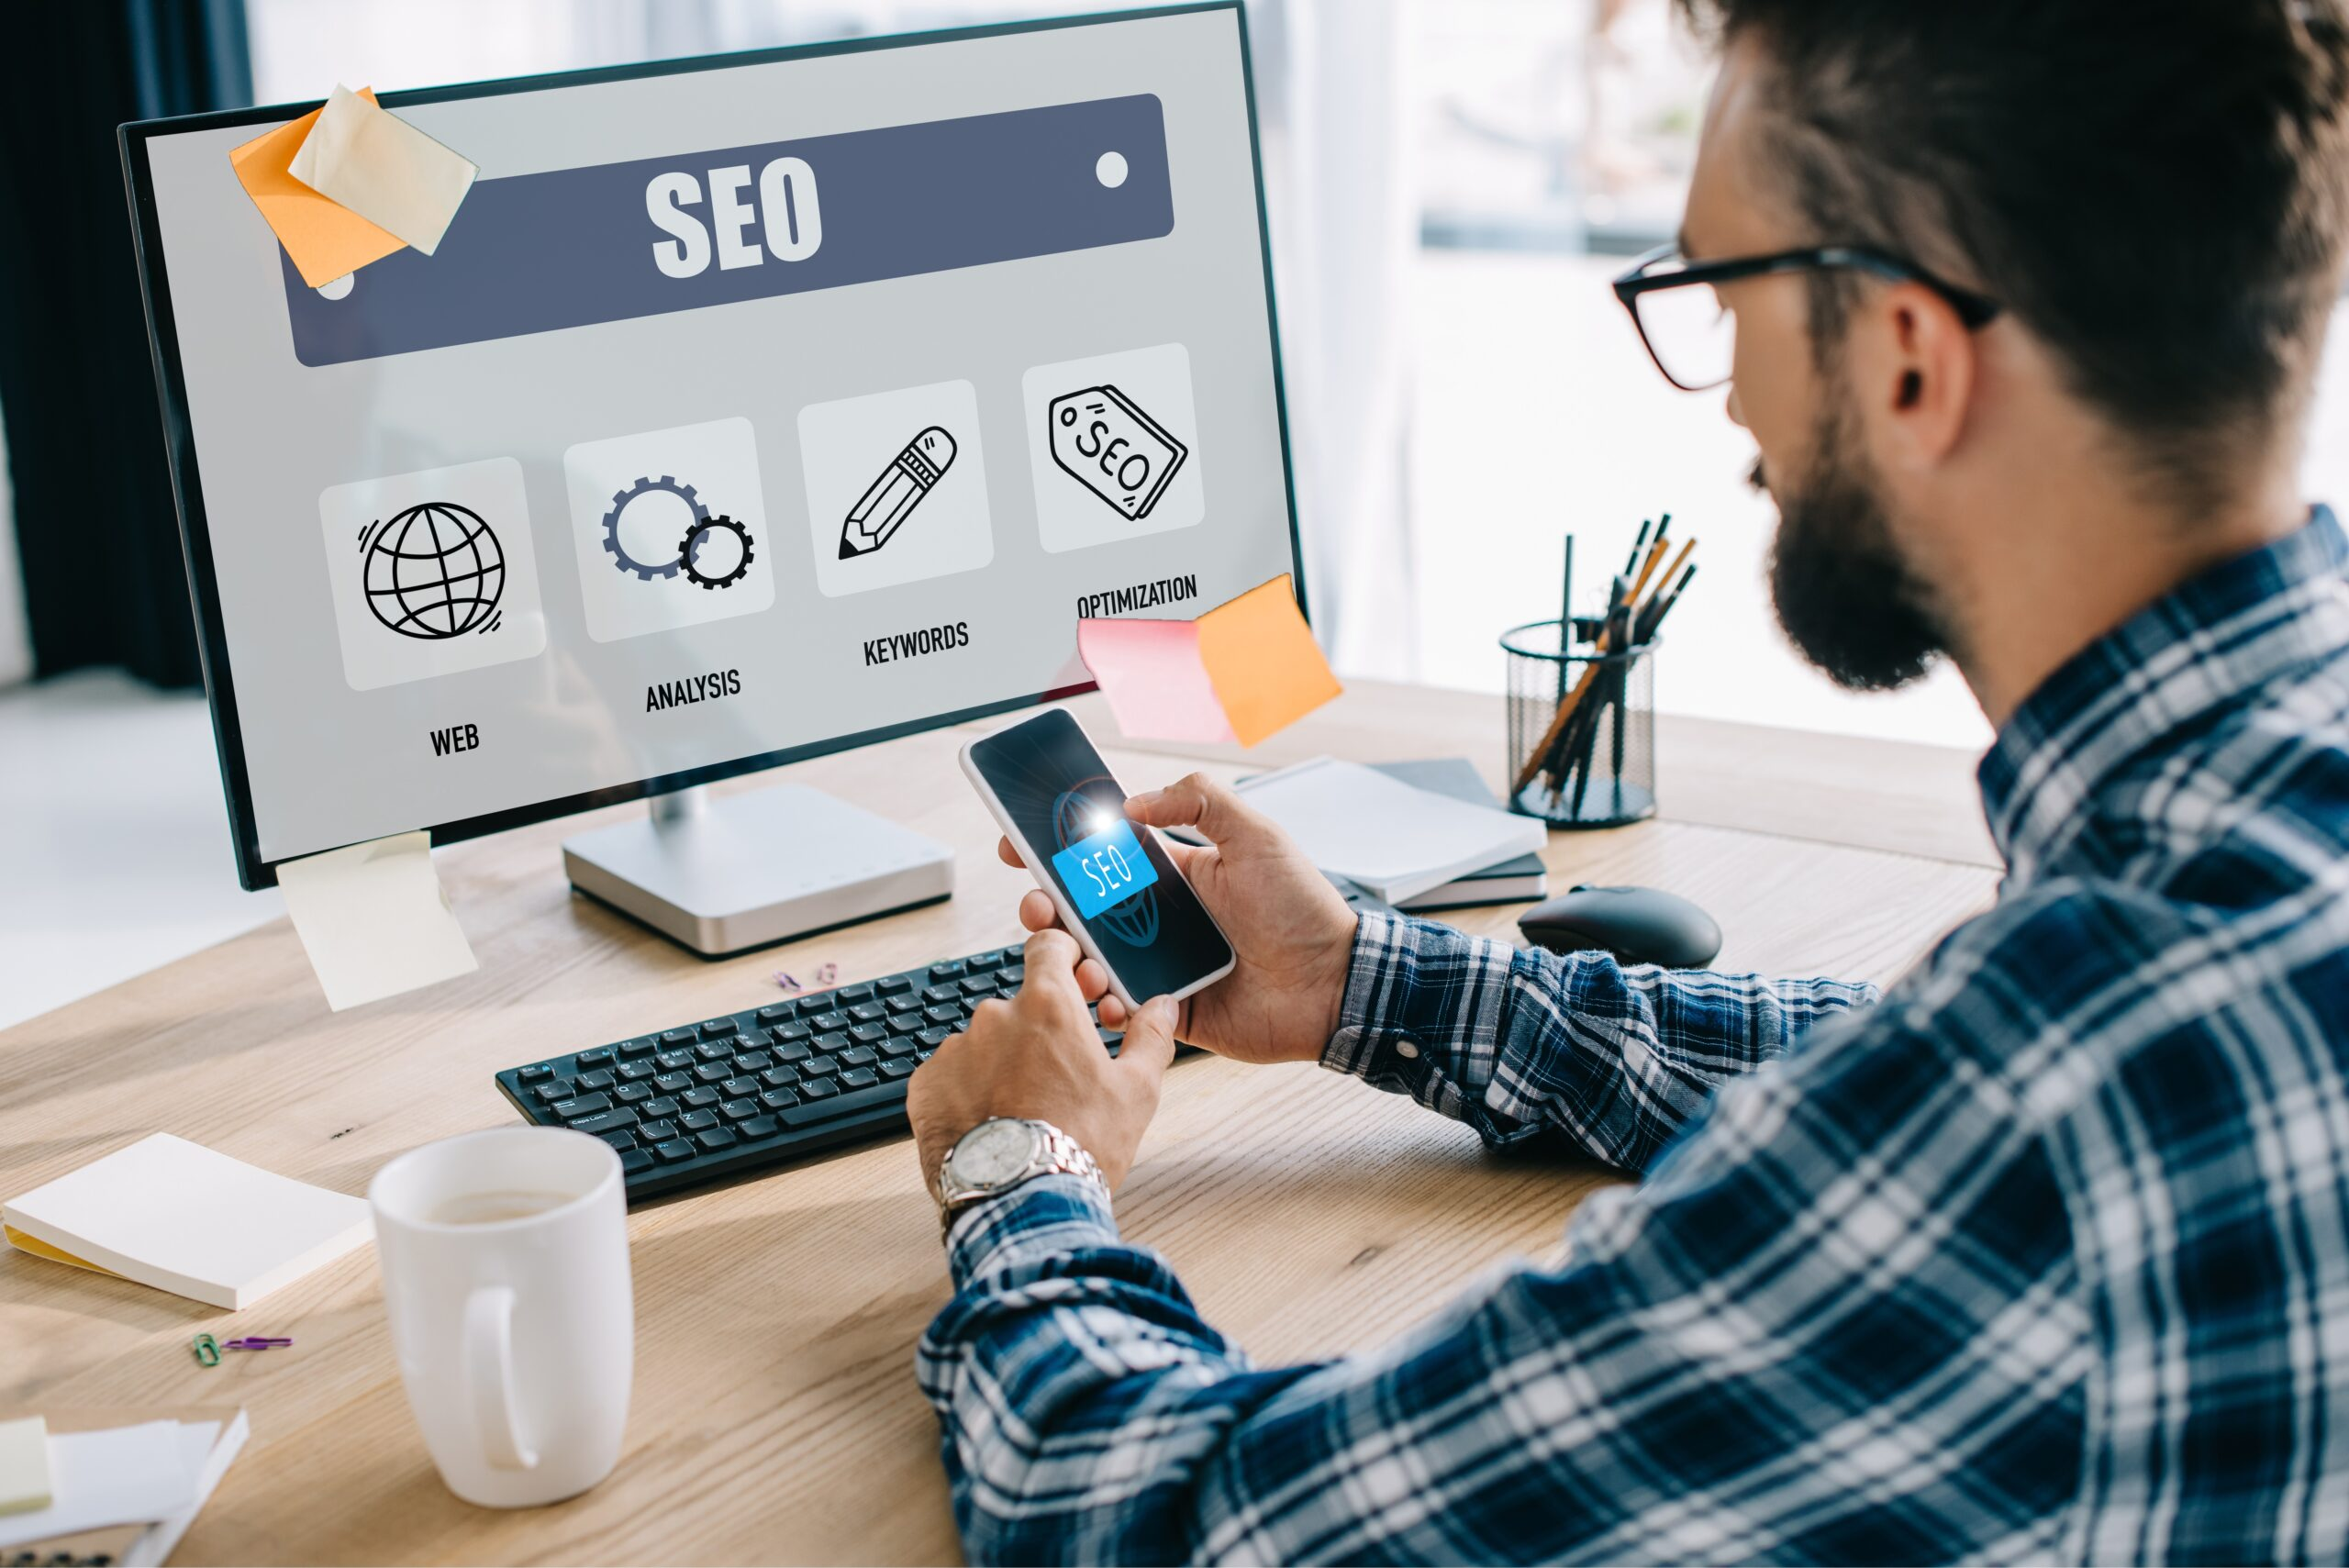 5 Ways to Get the Most Out of SEO